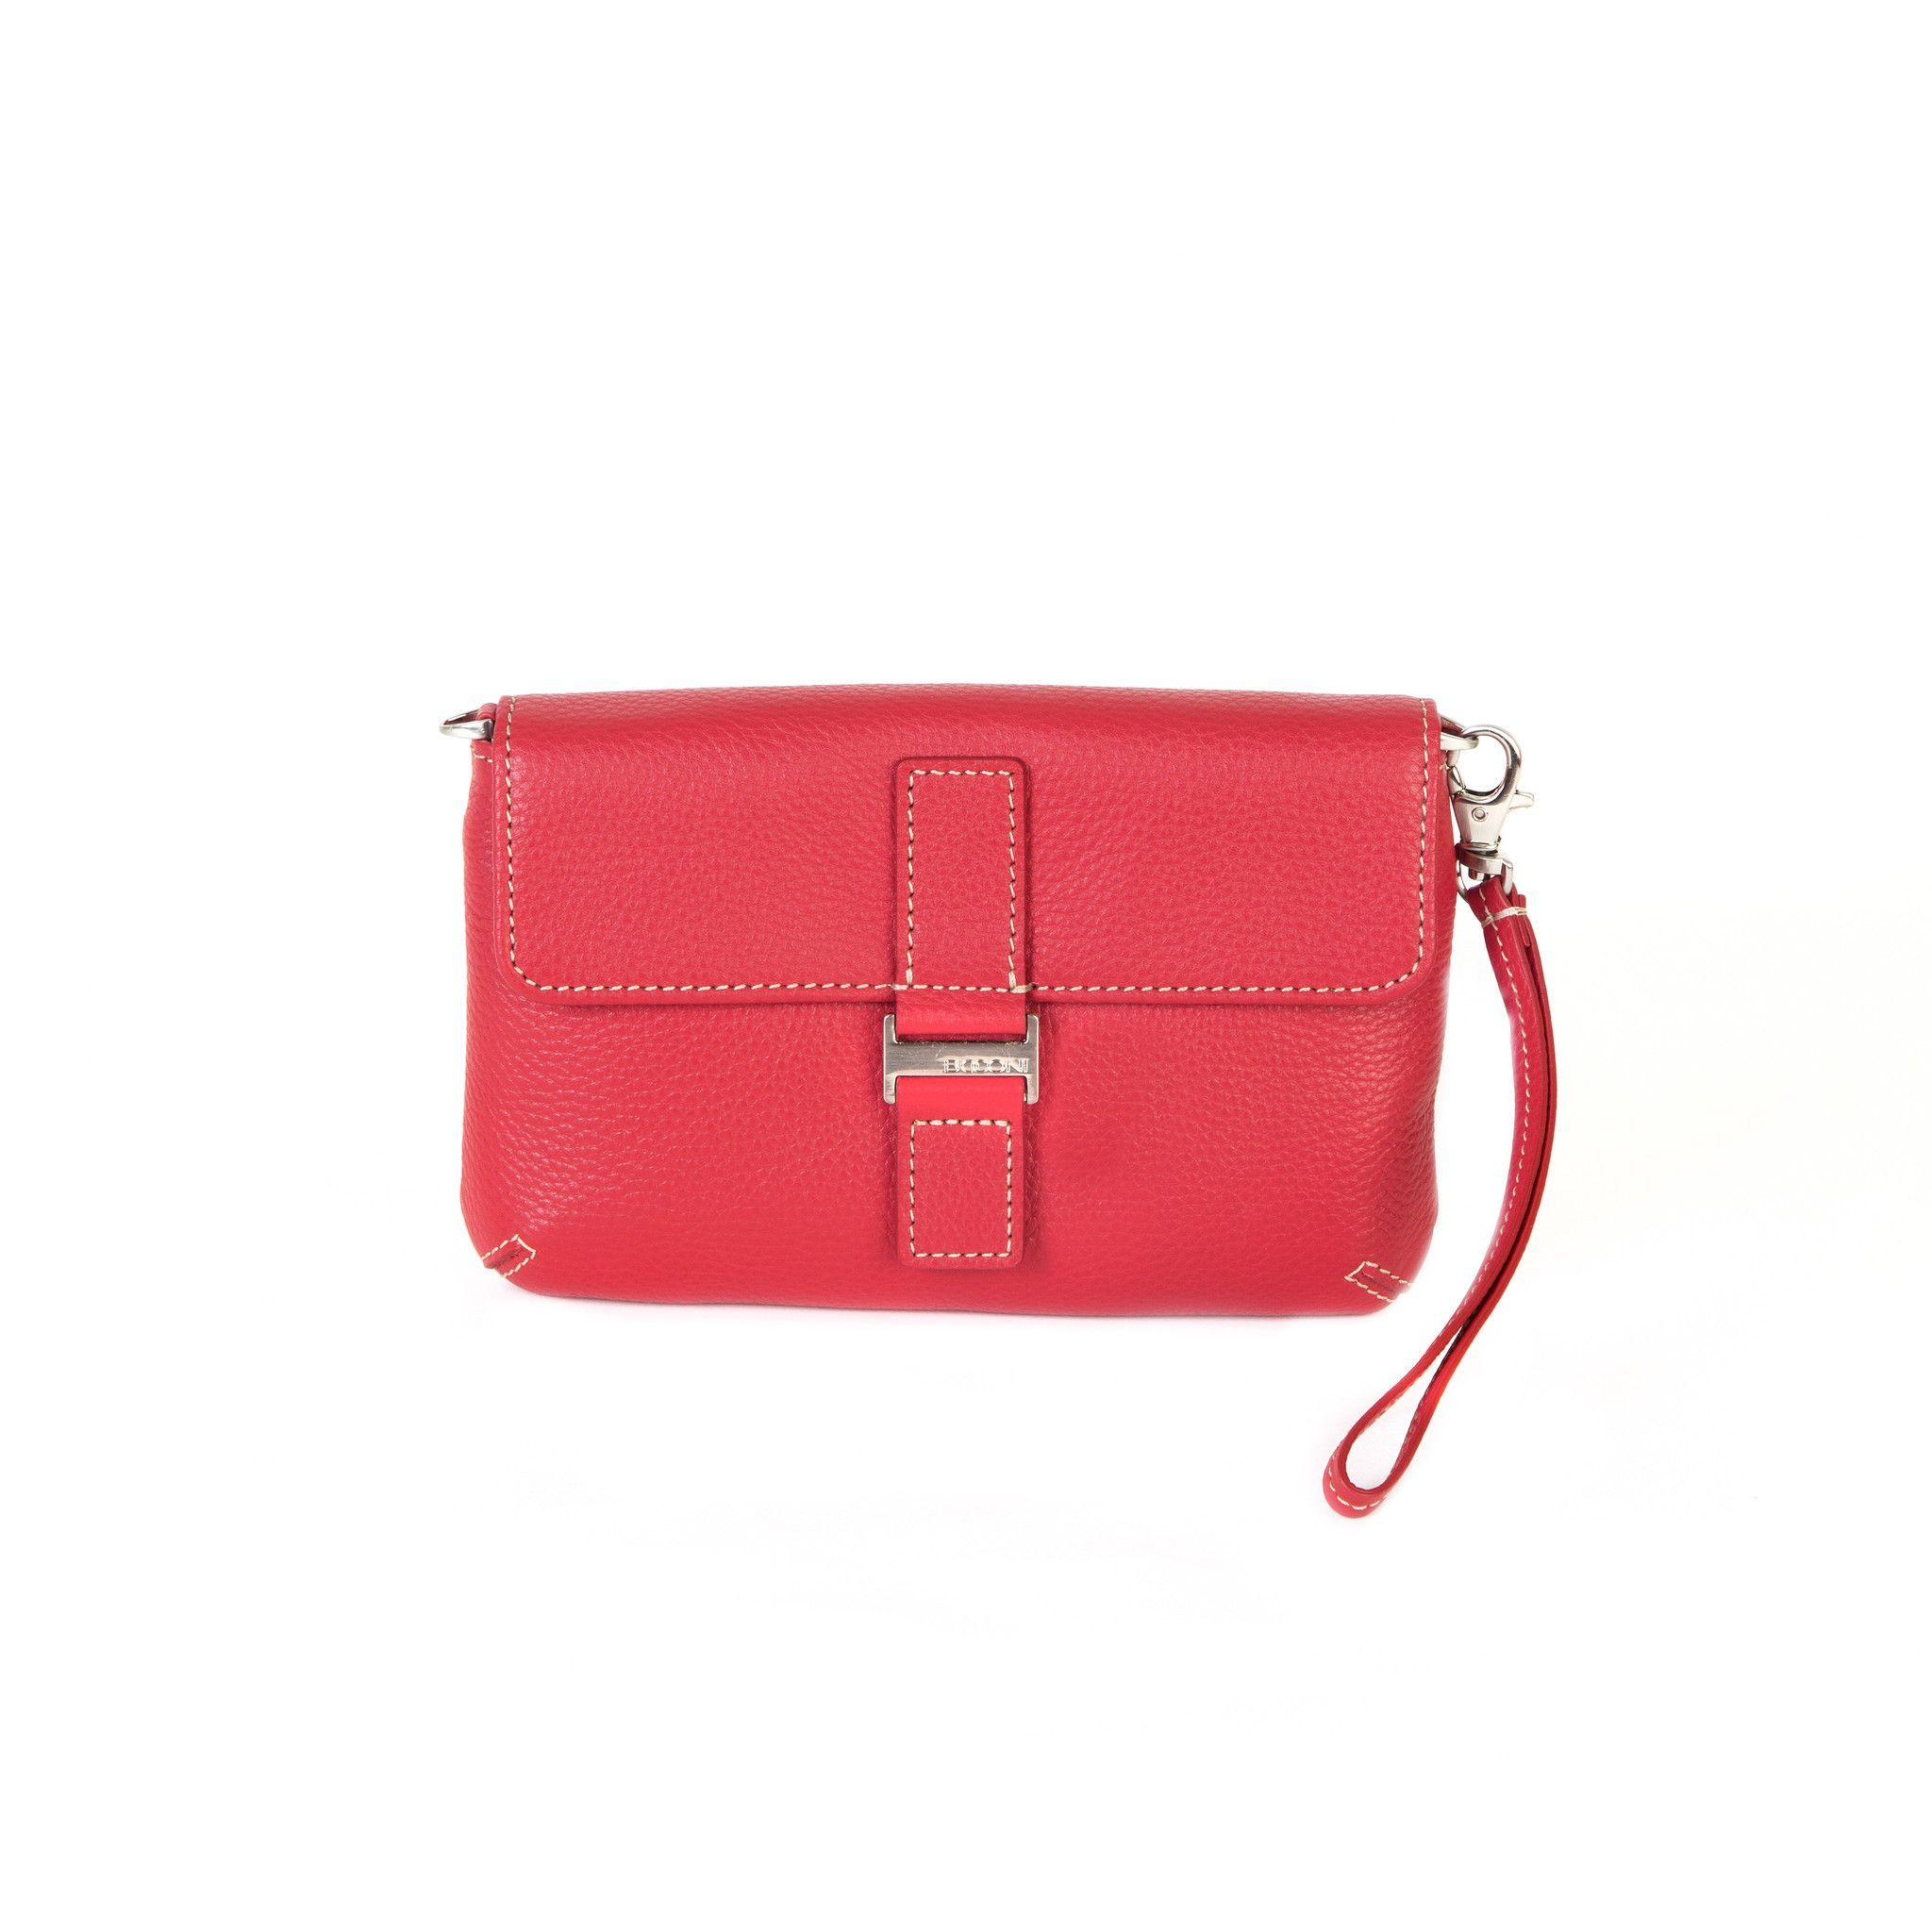 Kylie RFID Mini Clutch in Berry